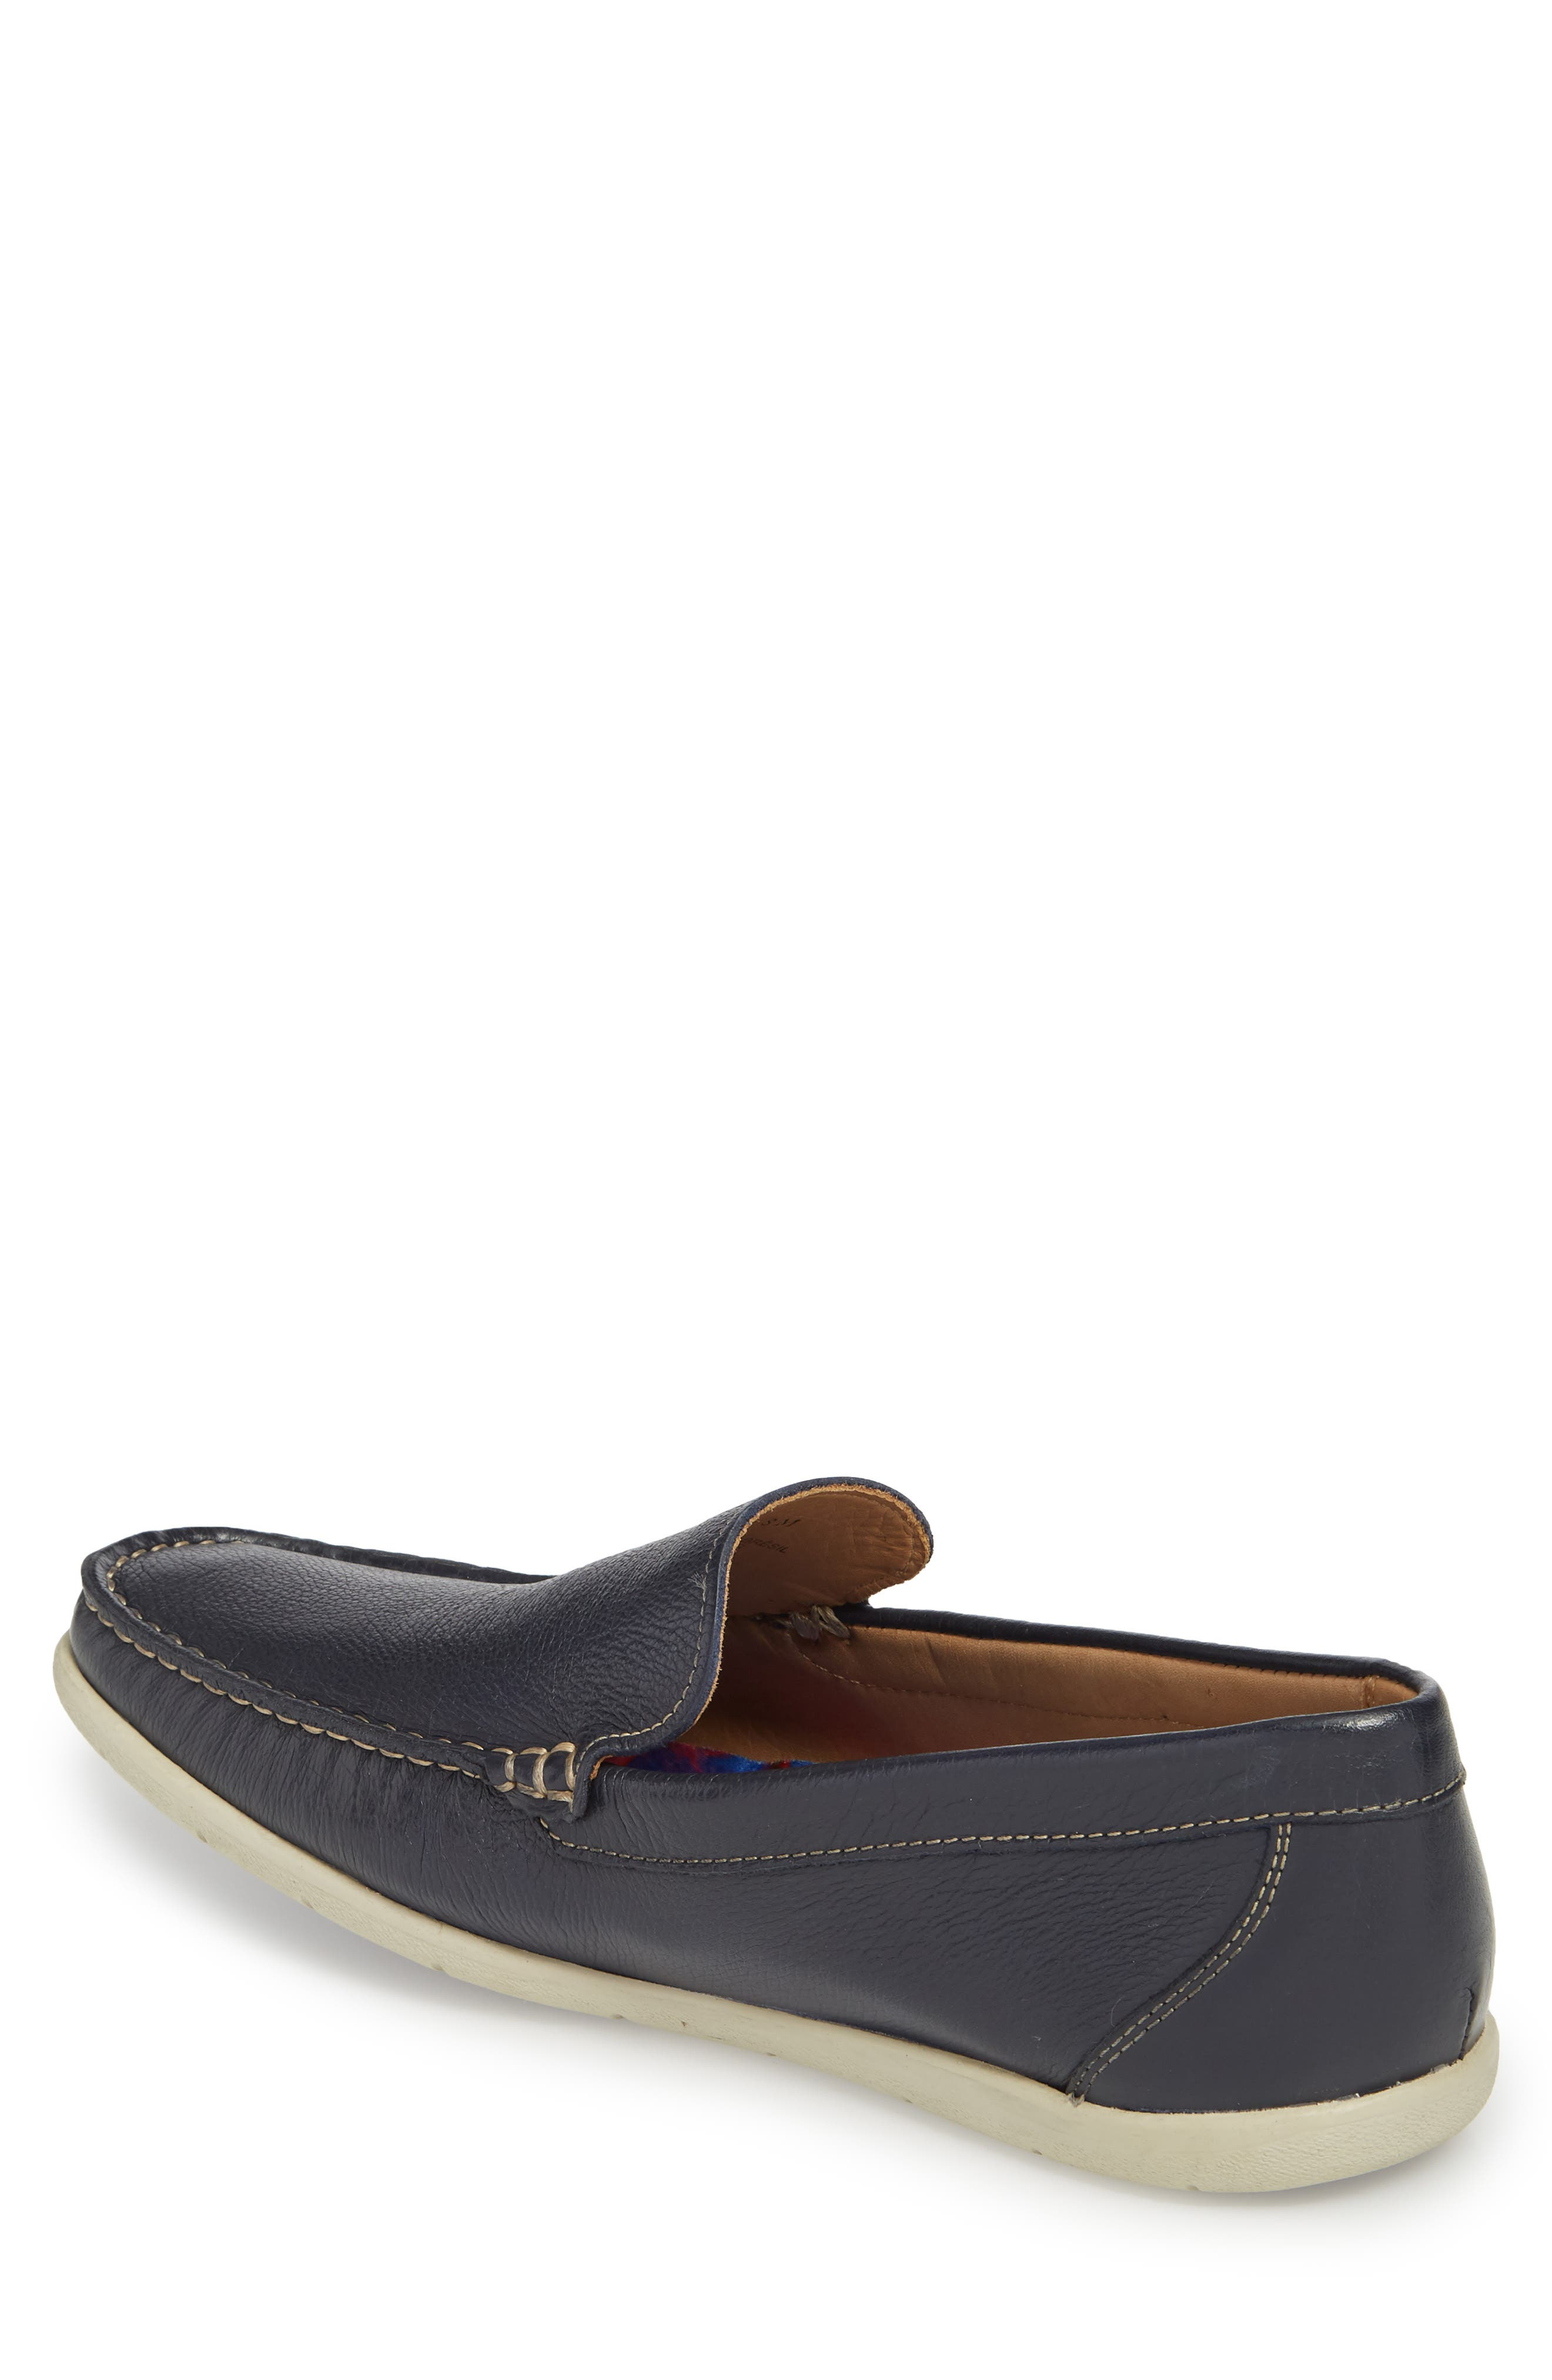 Calistoga Loafer,                             Alternate thumbnail 2, color,                             Navy Leather